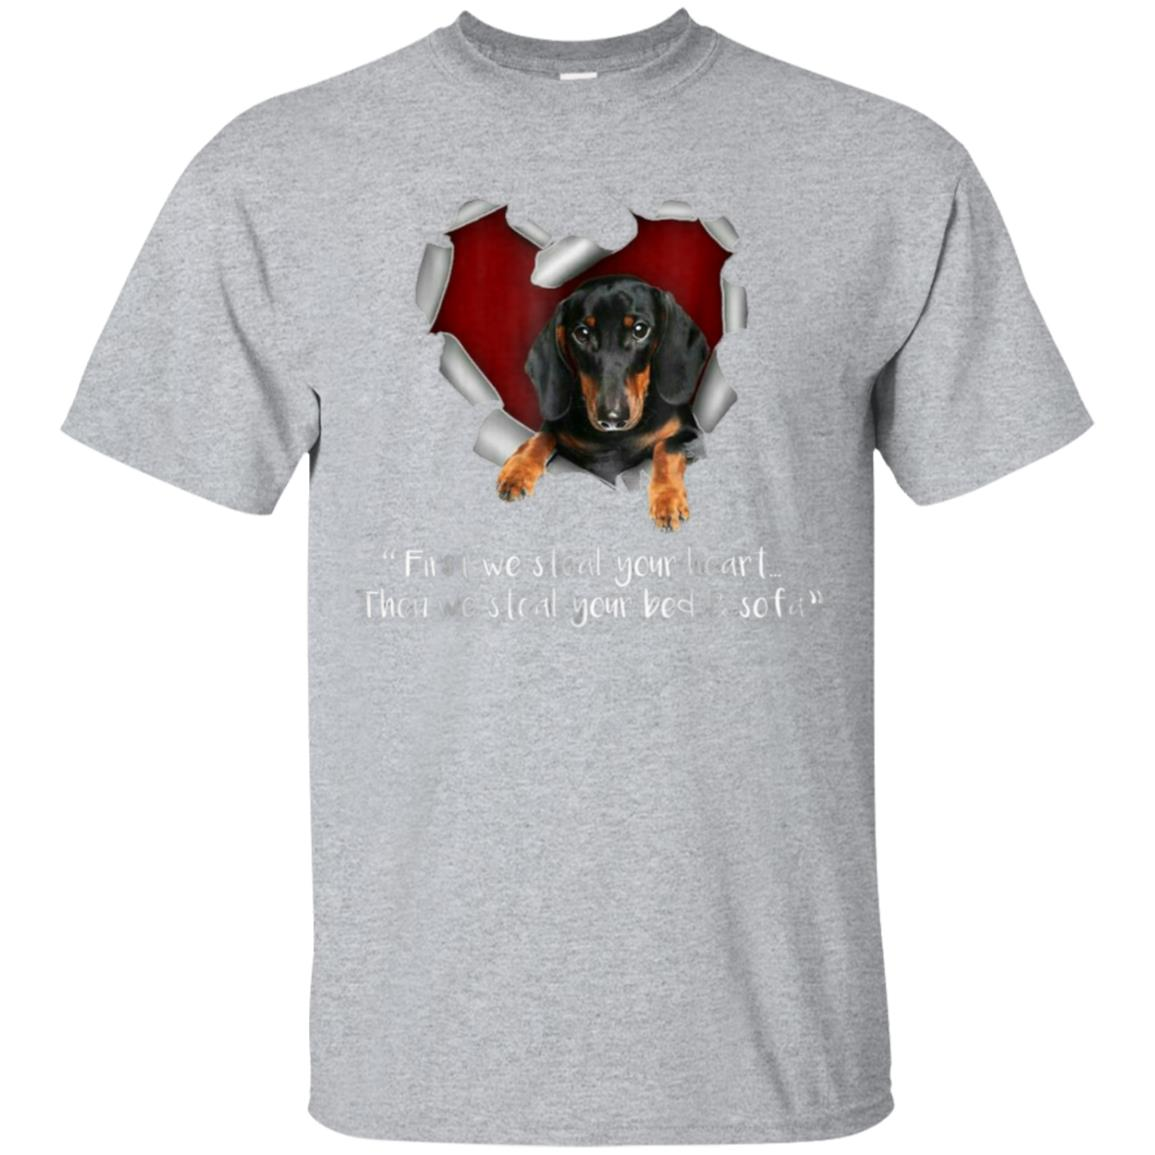 Dachshund Tshirt - First We Steal Your Heart 99promocode